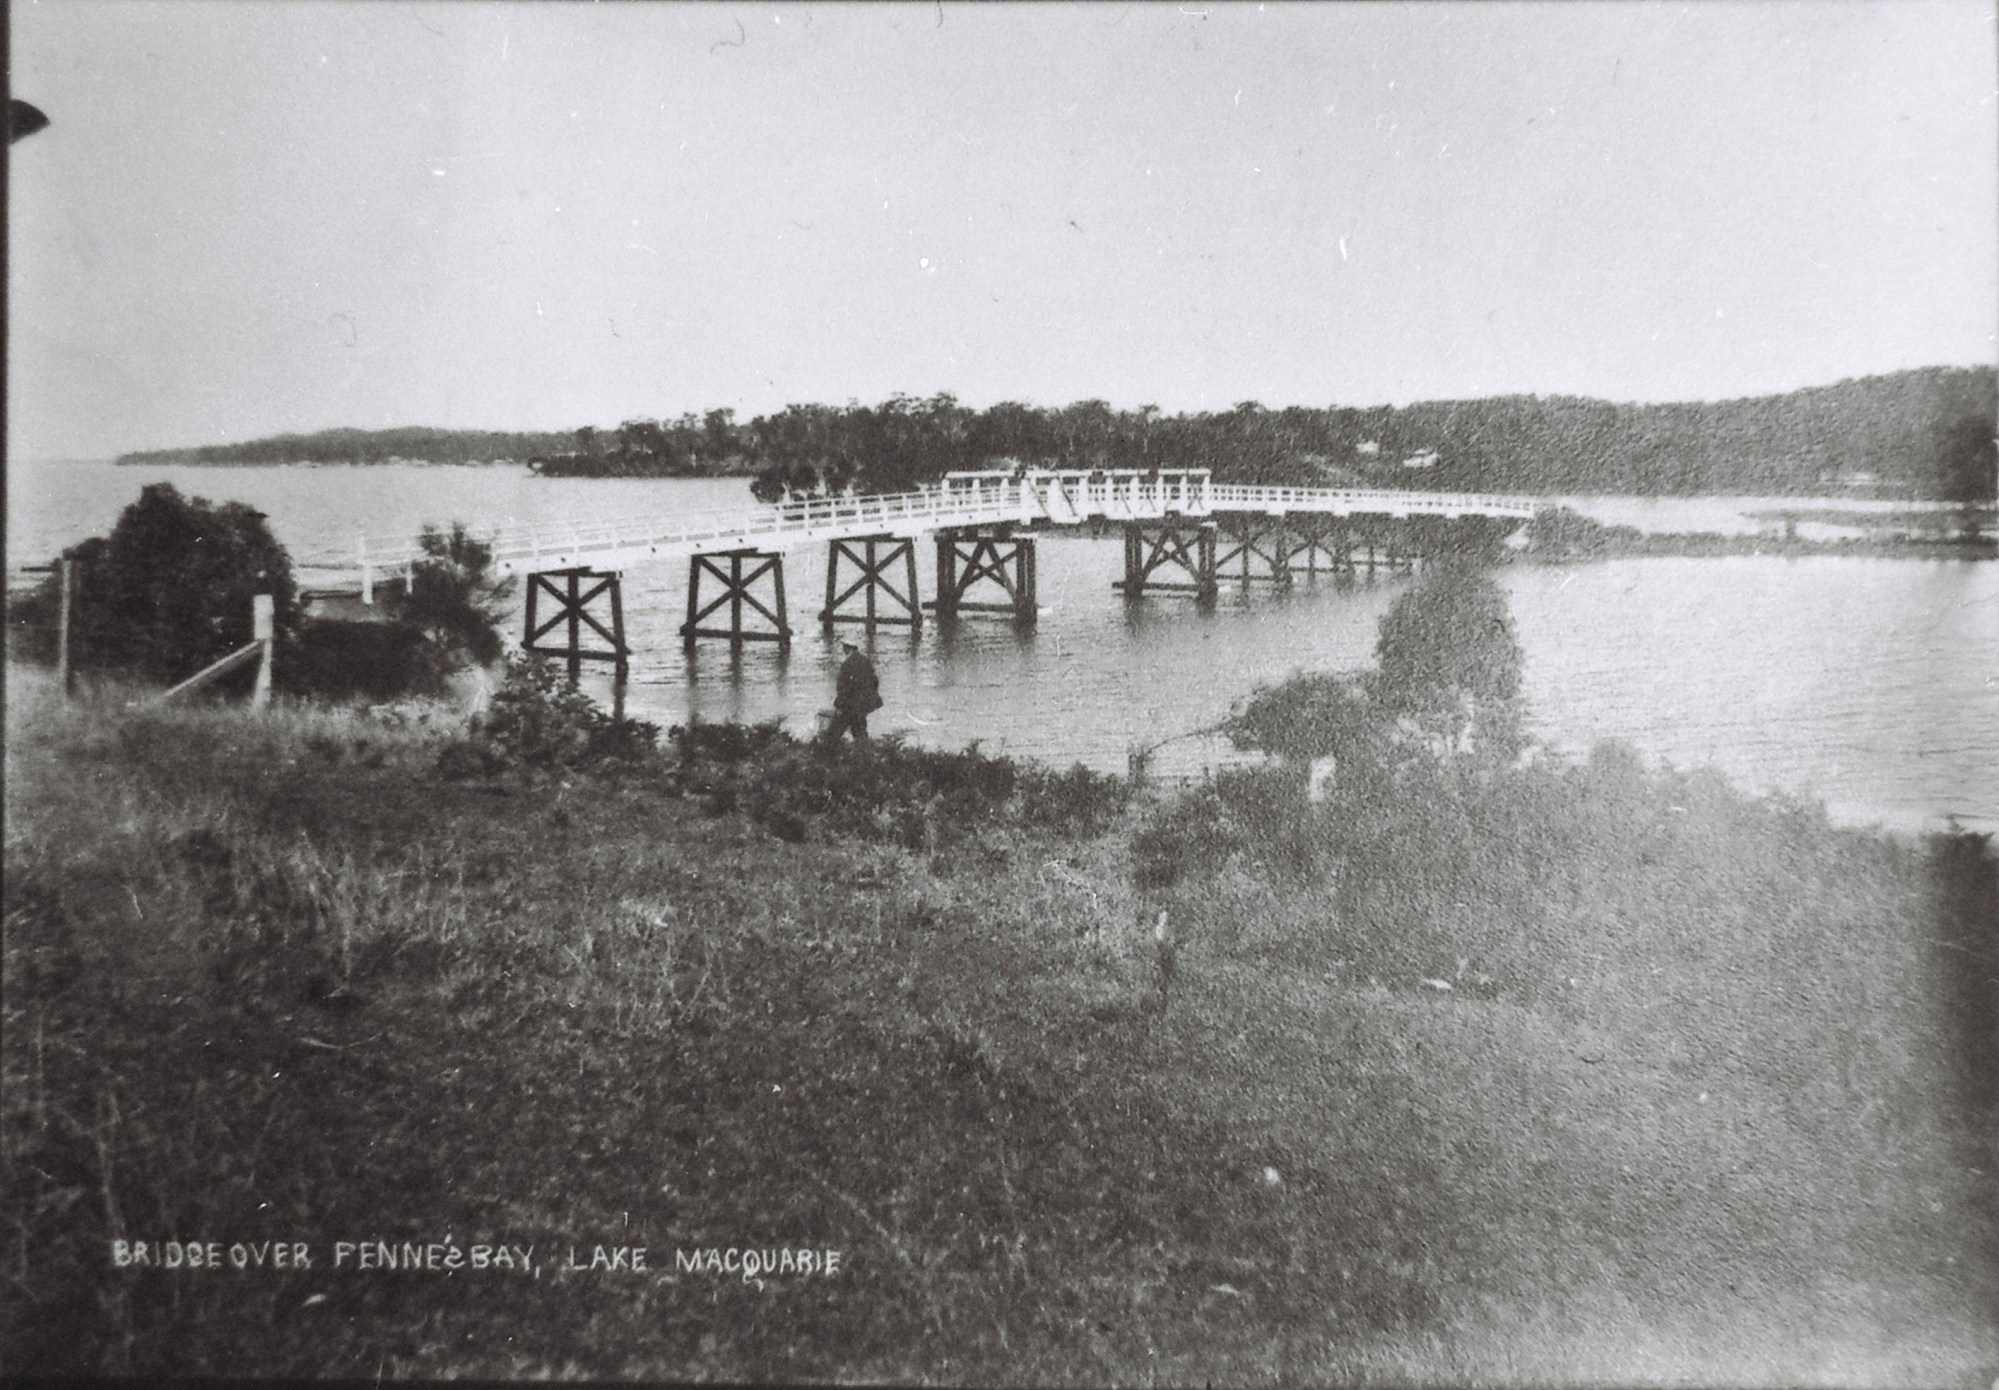 Fennell Bay History